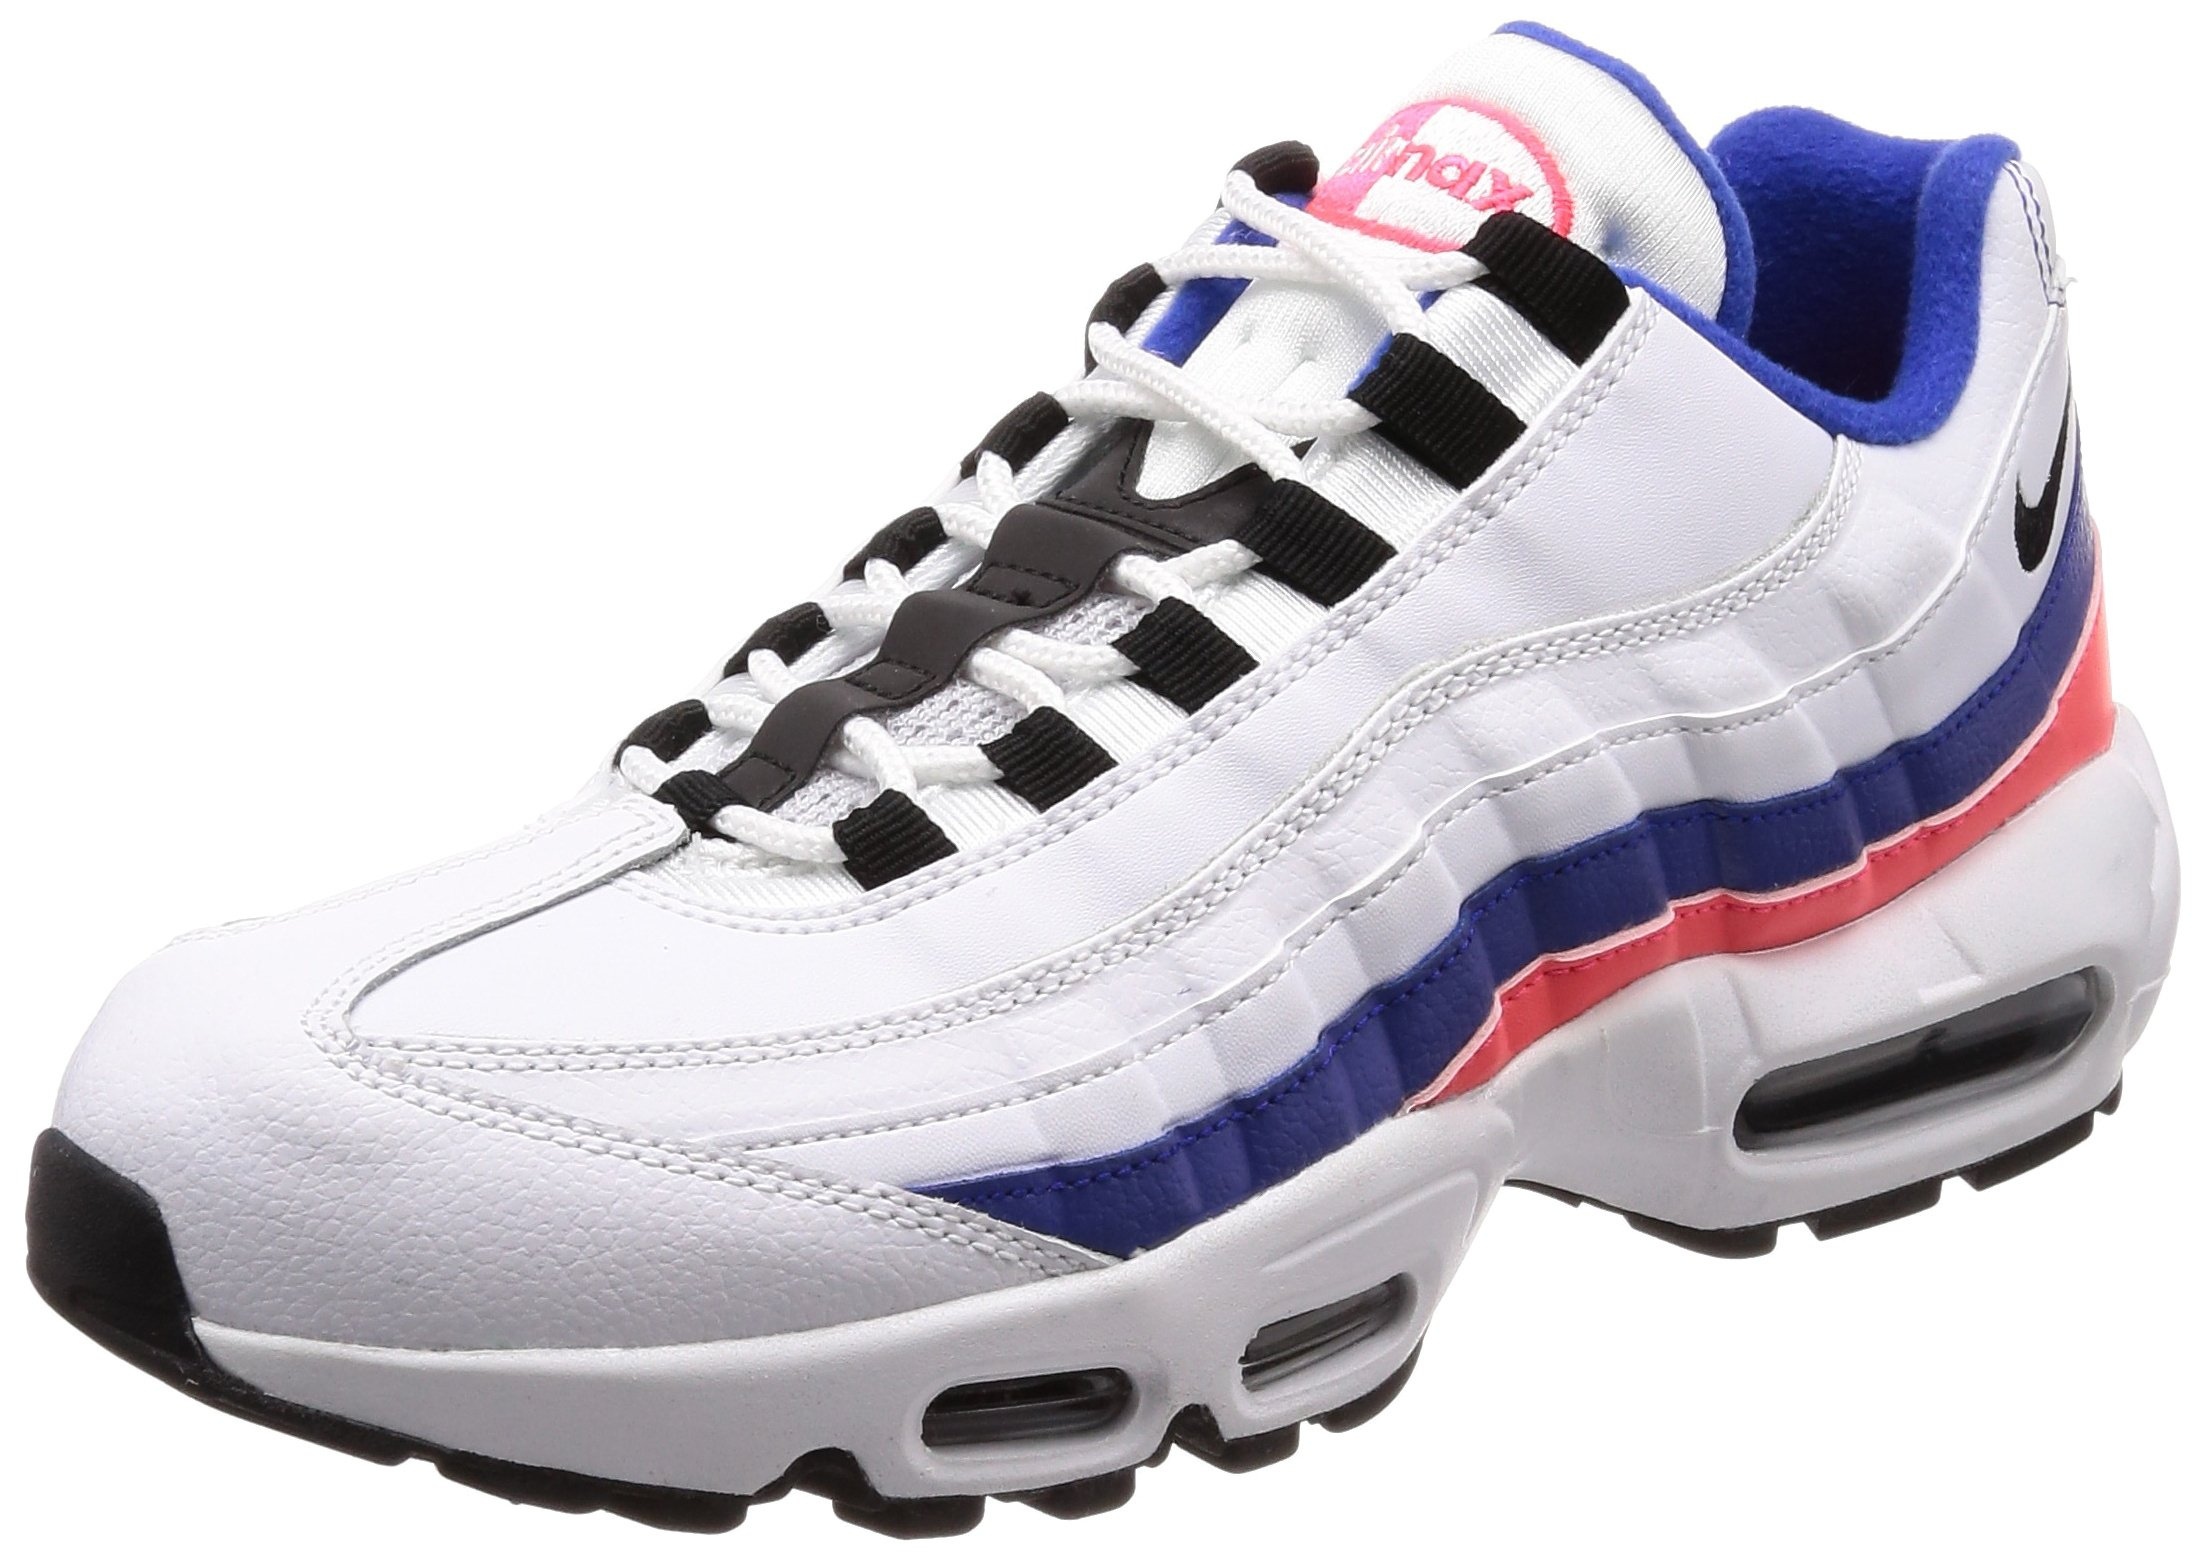 promo code 57b99 cfc15 Galleon - NIKE Air Max 95 Essential Mens Style  749766-106 Size  7